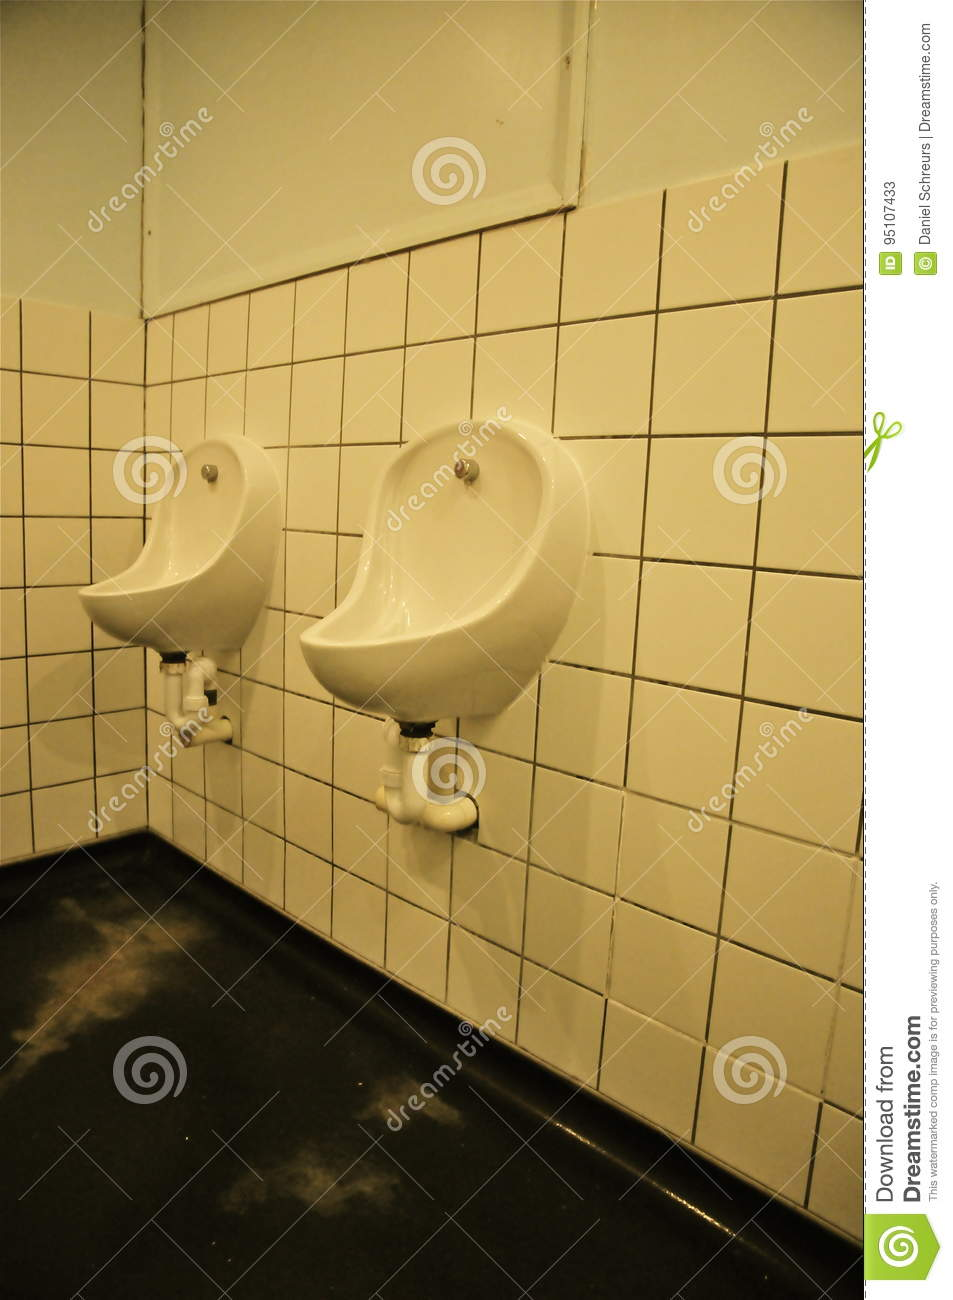 Urinals; Abbey Road Studios, London Stock Image - Image of color ...